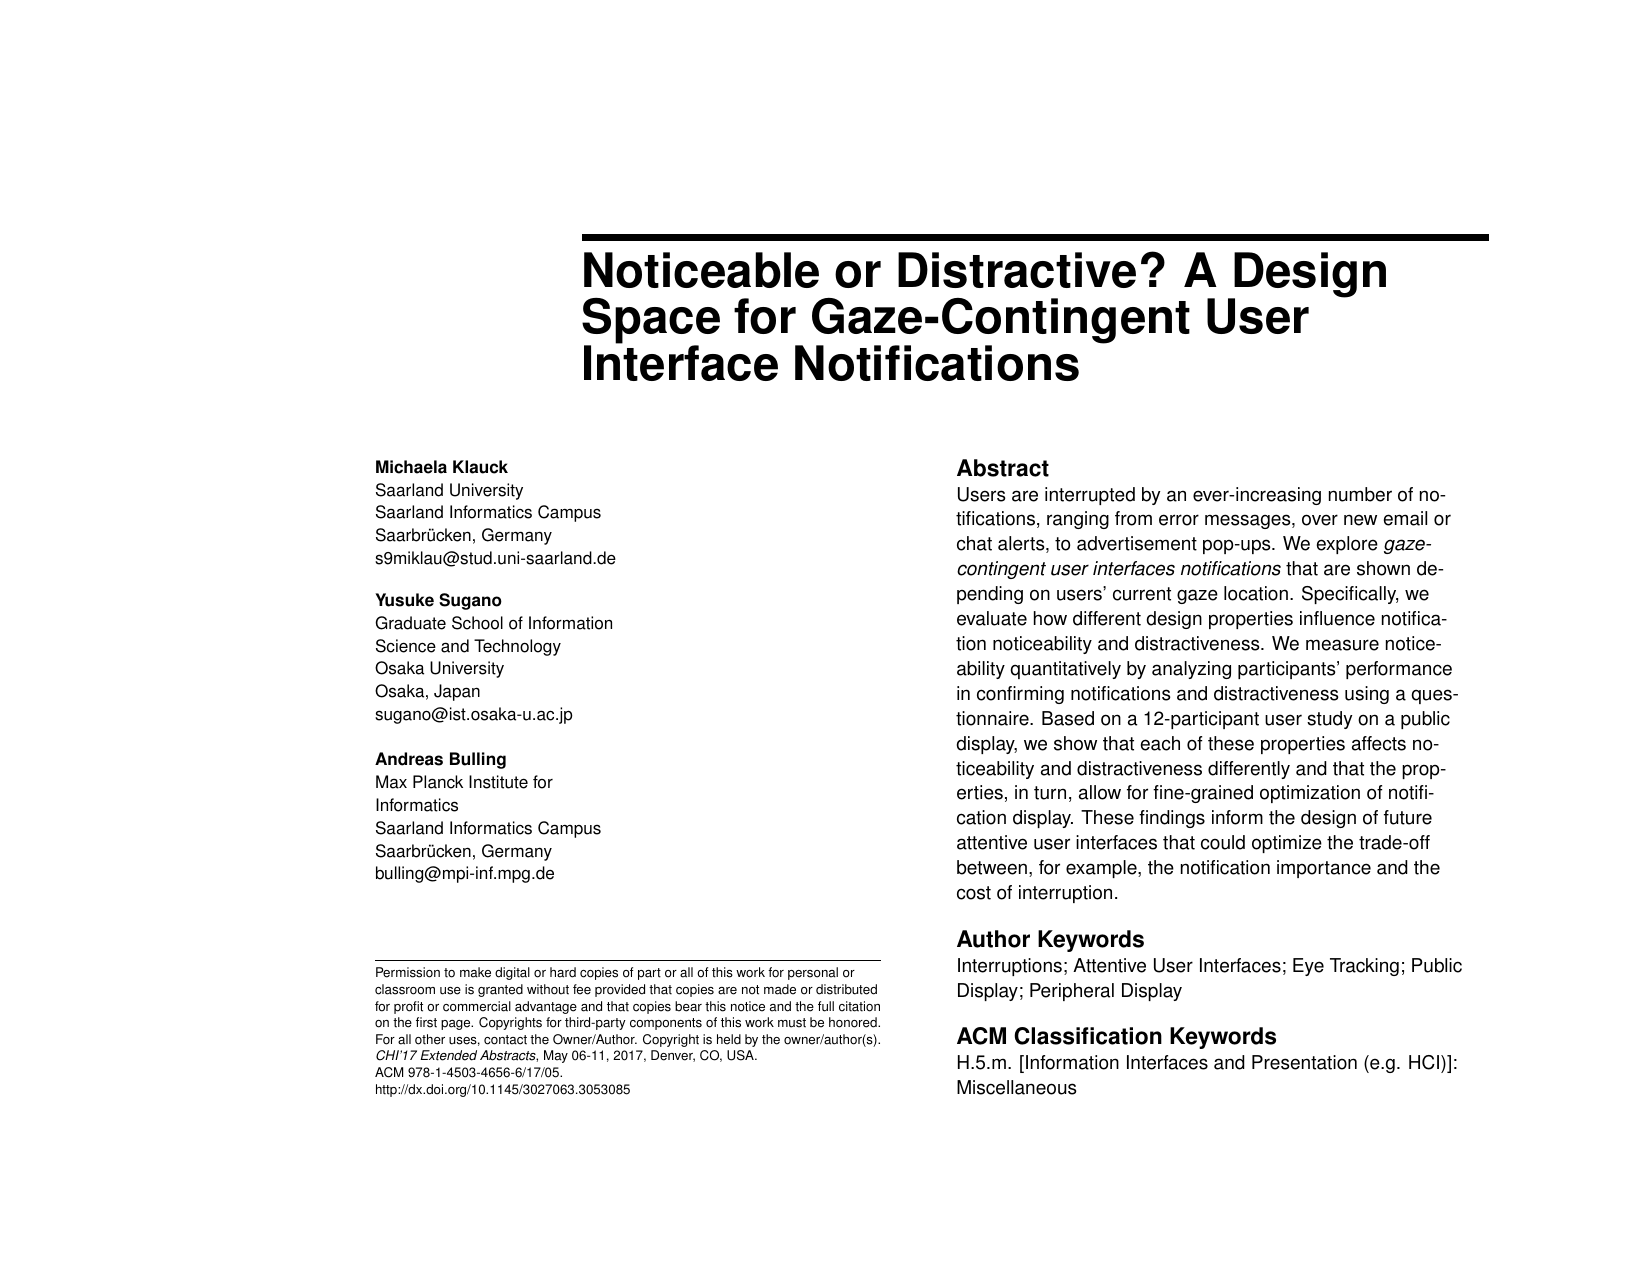 Noticeable or Distractive? A Design Space for Gaze-Contingent User Interface Notifications